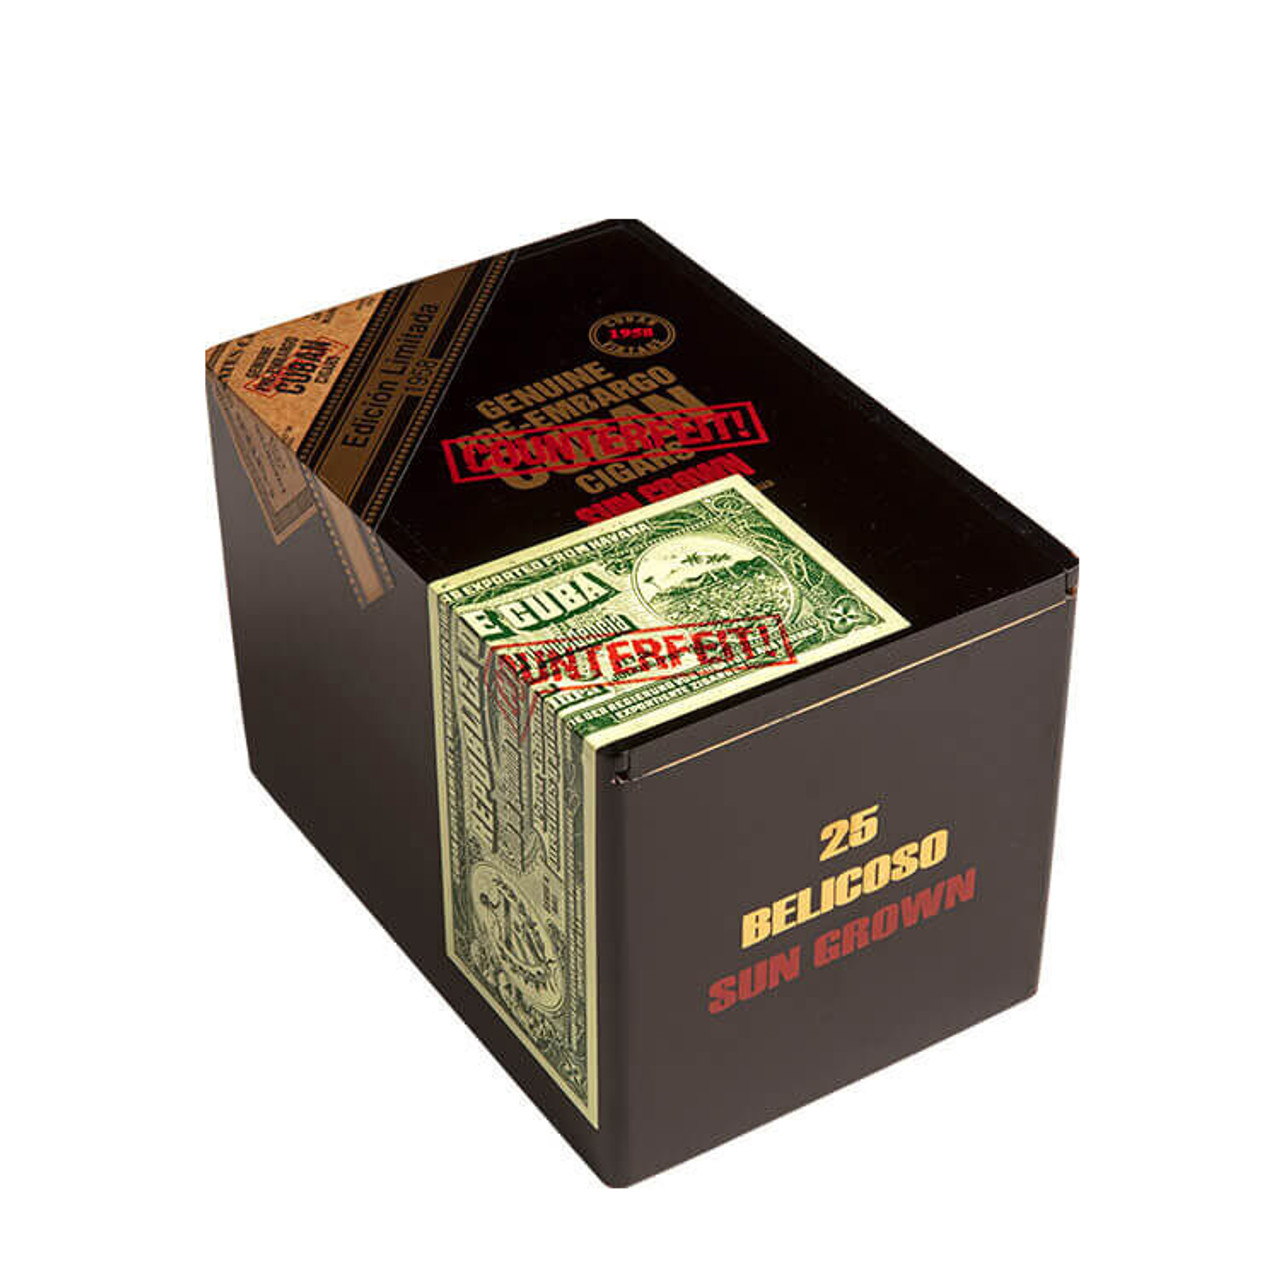 Genuine Pre-Embargo C.C. Sun Grown 1958 Belicoso Cigars - 6.0 x 54 (Box of 25)